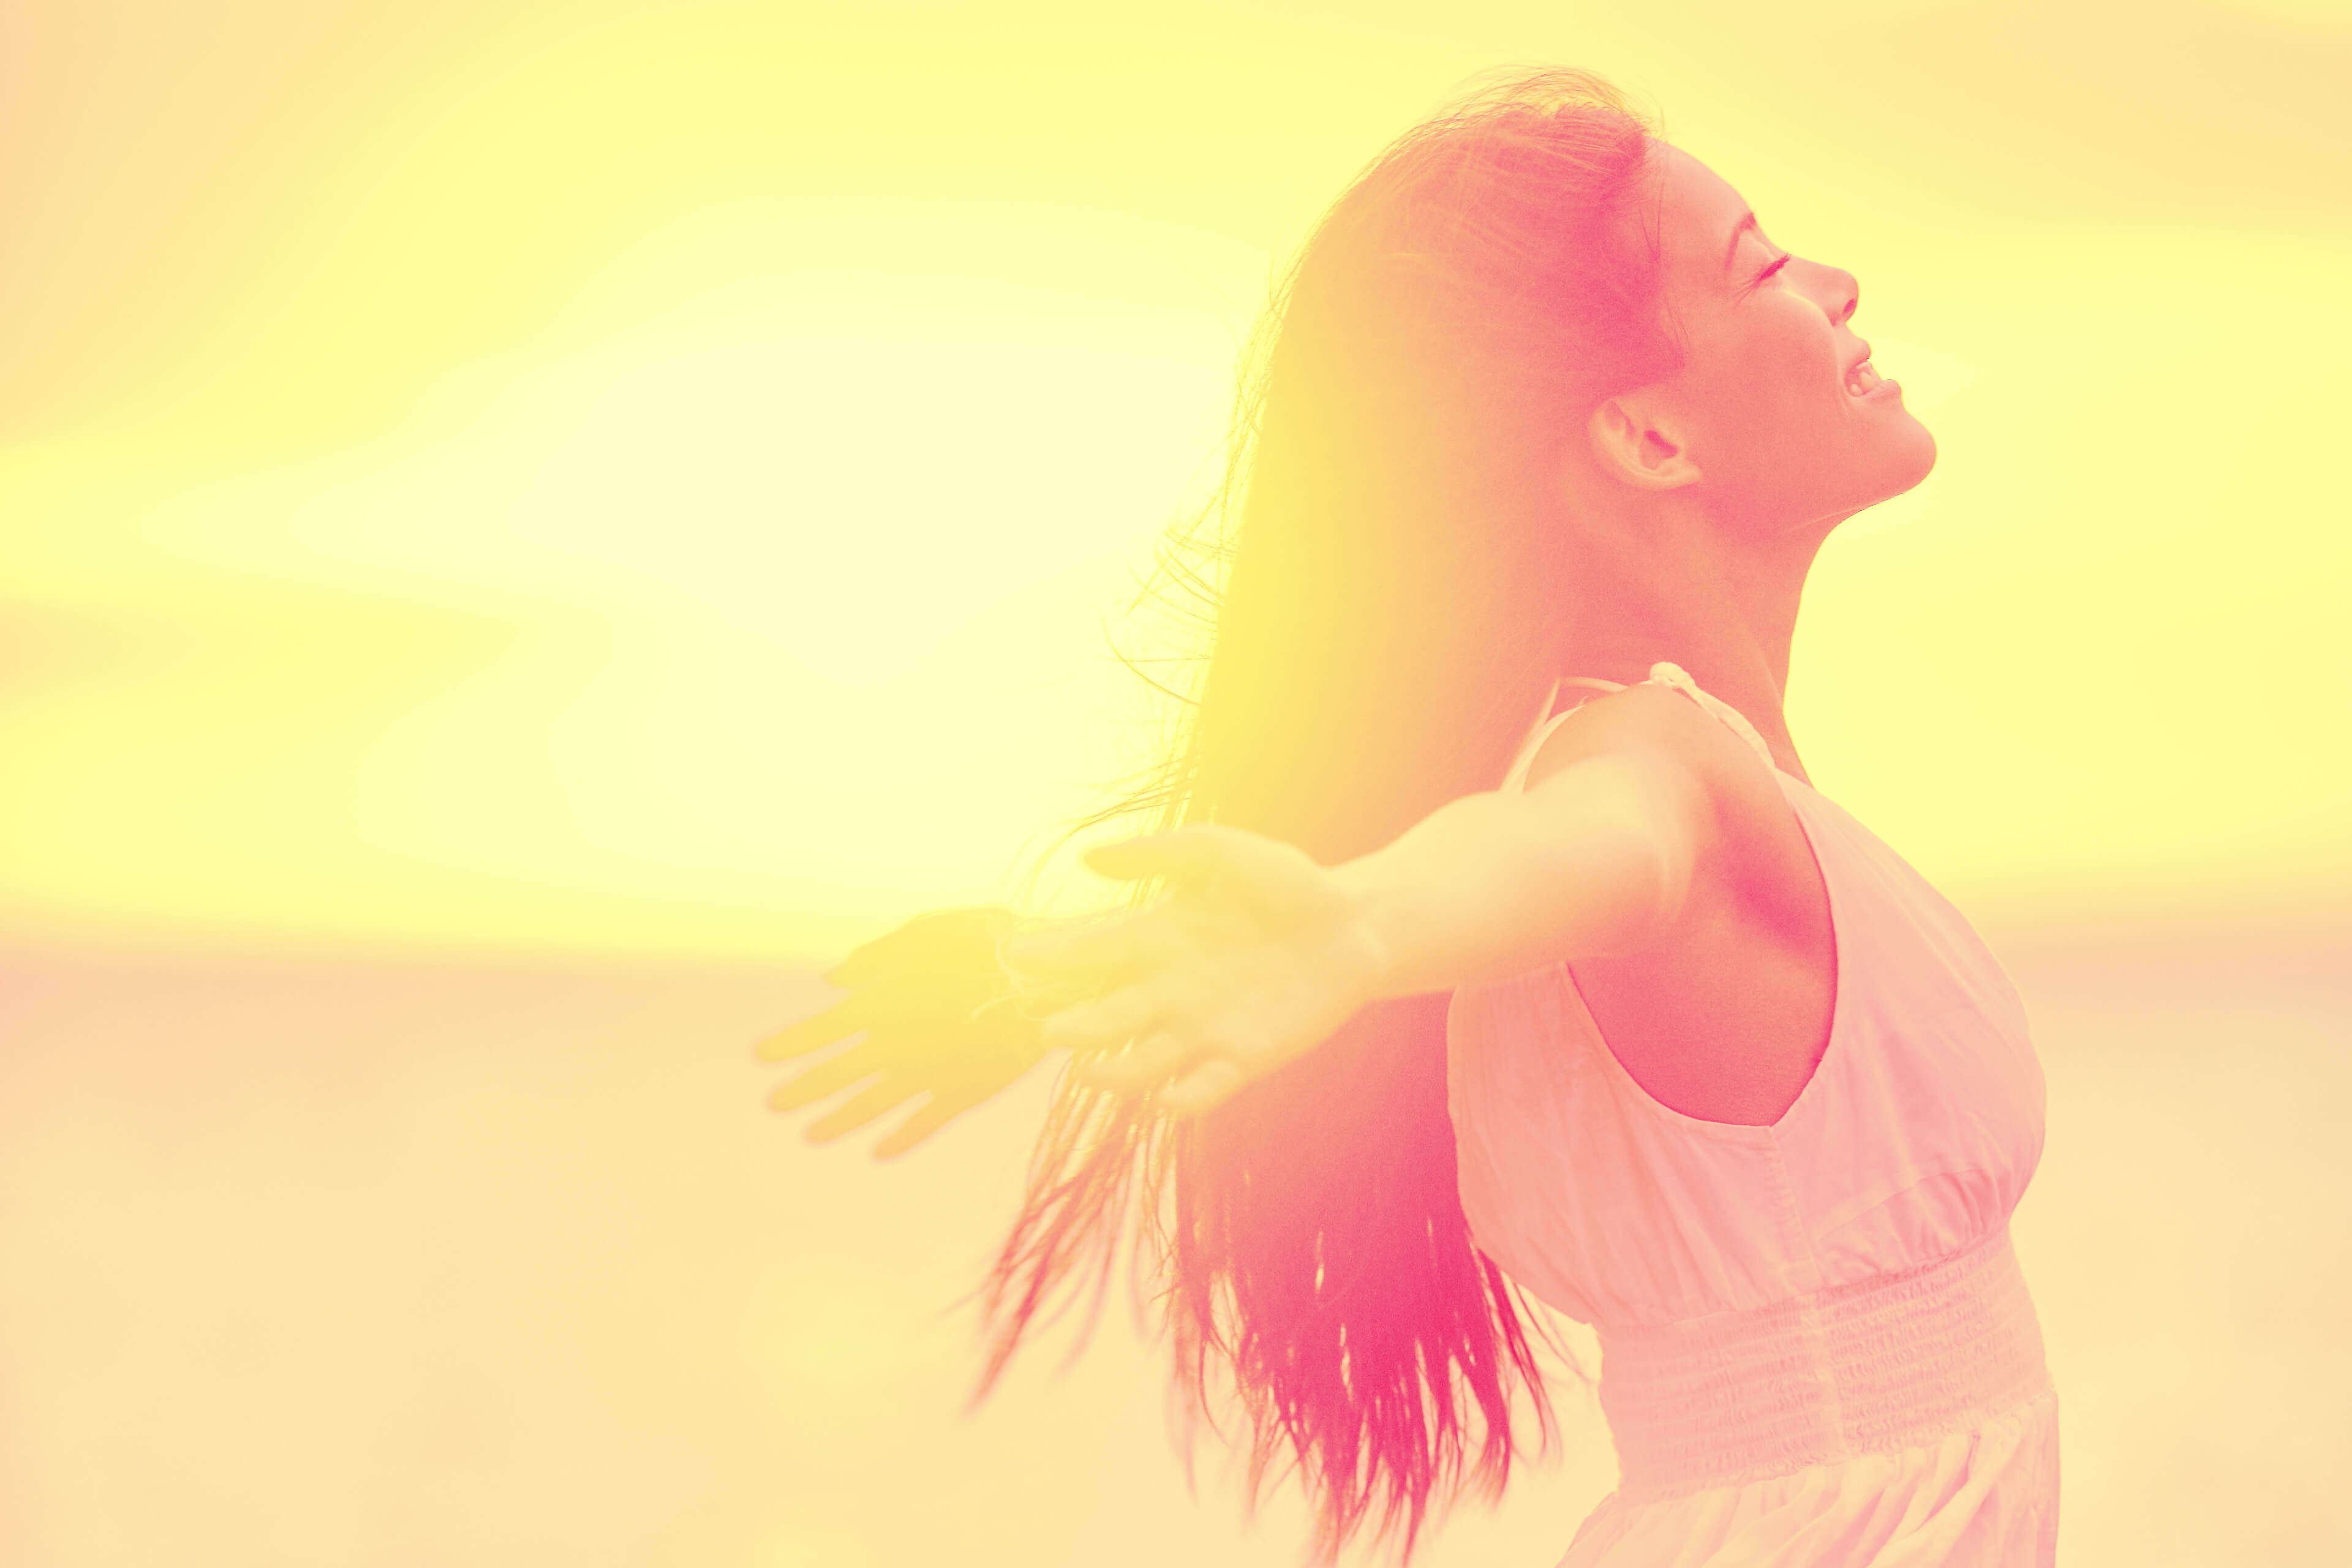 Happiness - Free happy woman enjoying sunset. Beautiful woman in white dress embracing the golden sunshine glow of sunset with arms outspread and face raised in sky enjoying peace, serenity in nature